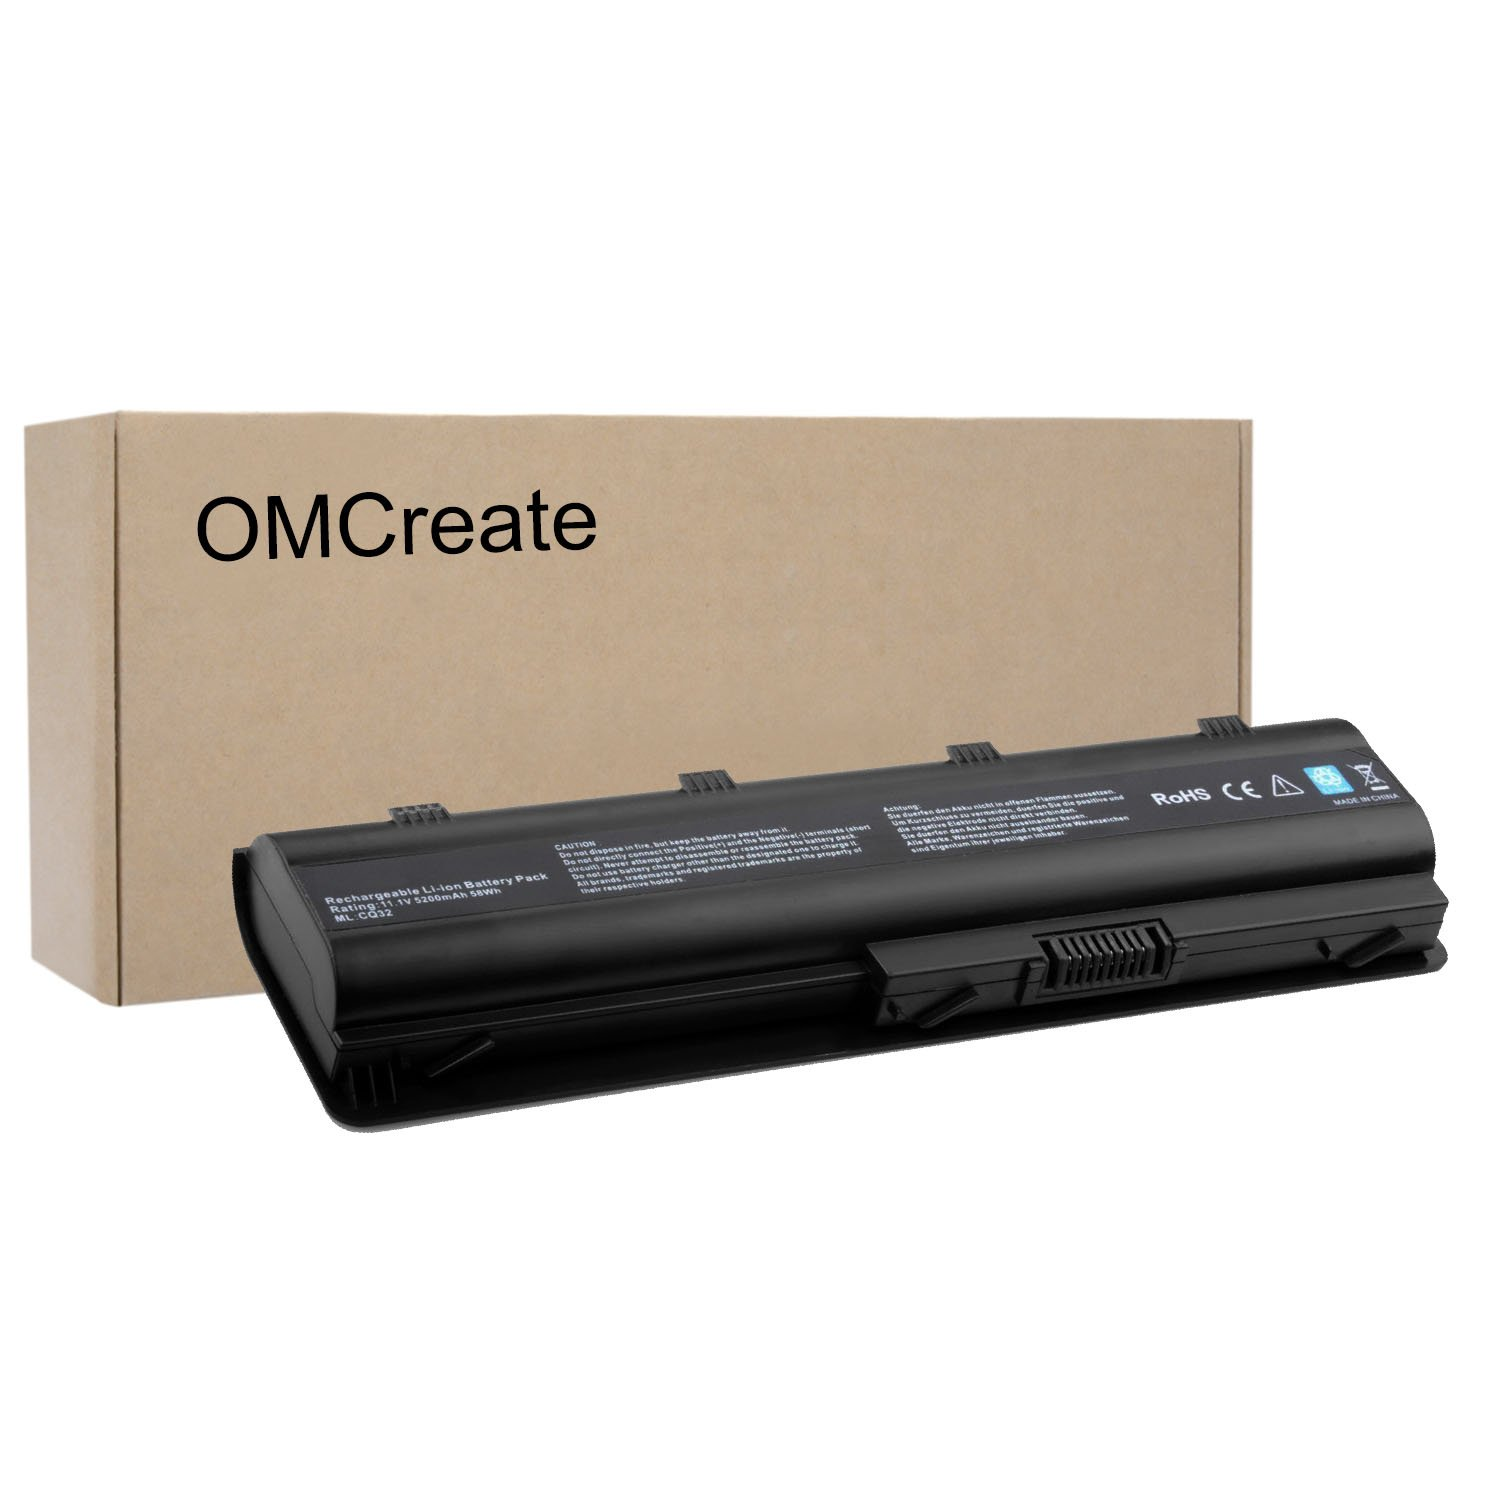 OMCreate Laptop Battery for HP 2000 Notebook PC 2000-2B19WM 2000-2C29WM 2000-2B09WM 2000-369WM 2000-365DX 2000-329WM 2000-2C29NR 2000-2d19WM 2000-299WM - 12 Months Warranty [Li-ion 6-Cell]